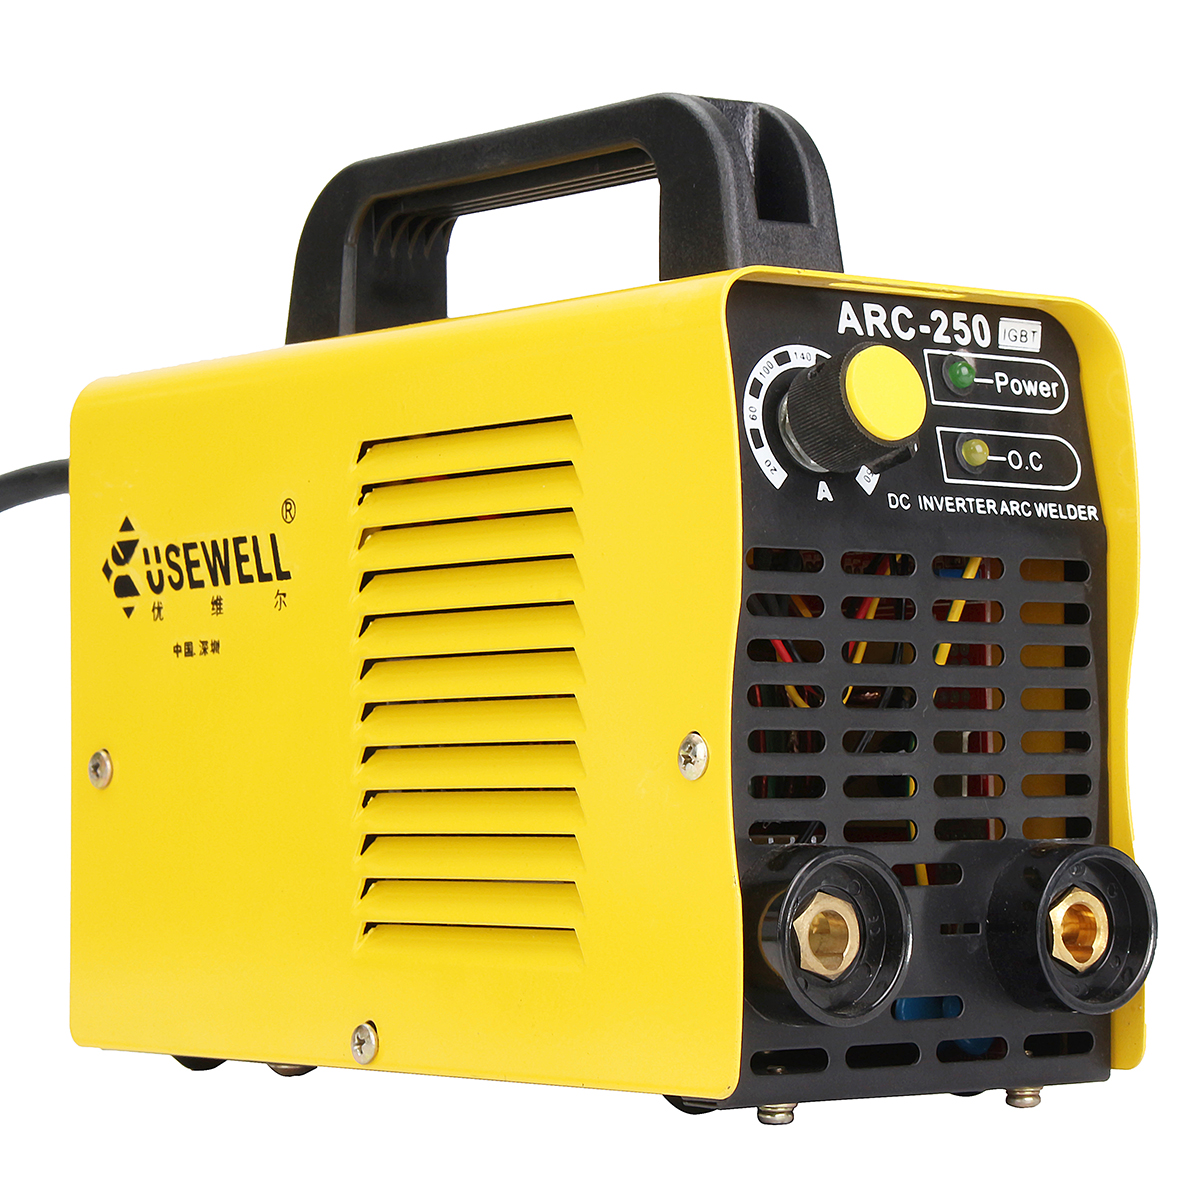 Usewell 220v 50hz 160amp Welding Inverter Portable Wiring Up A Machine